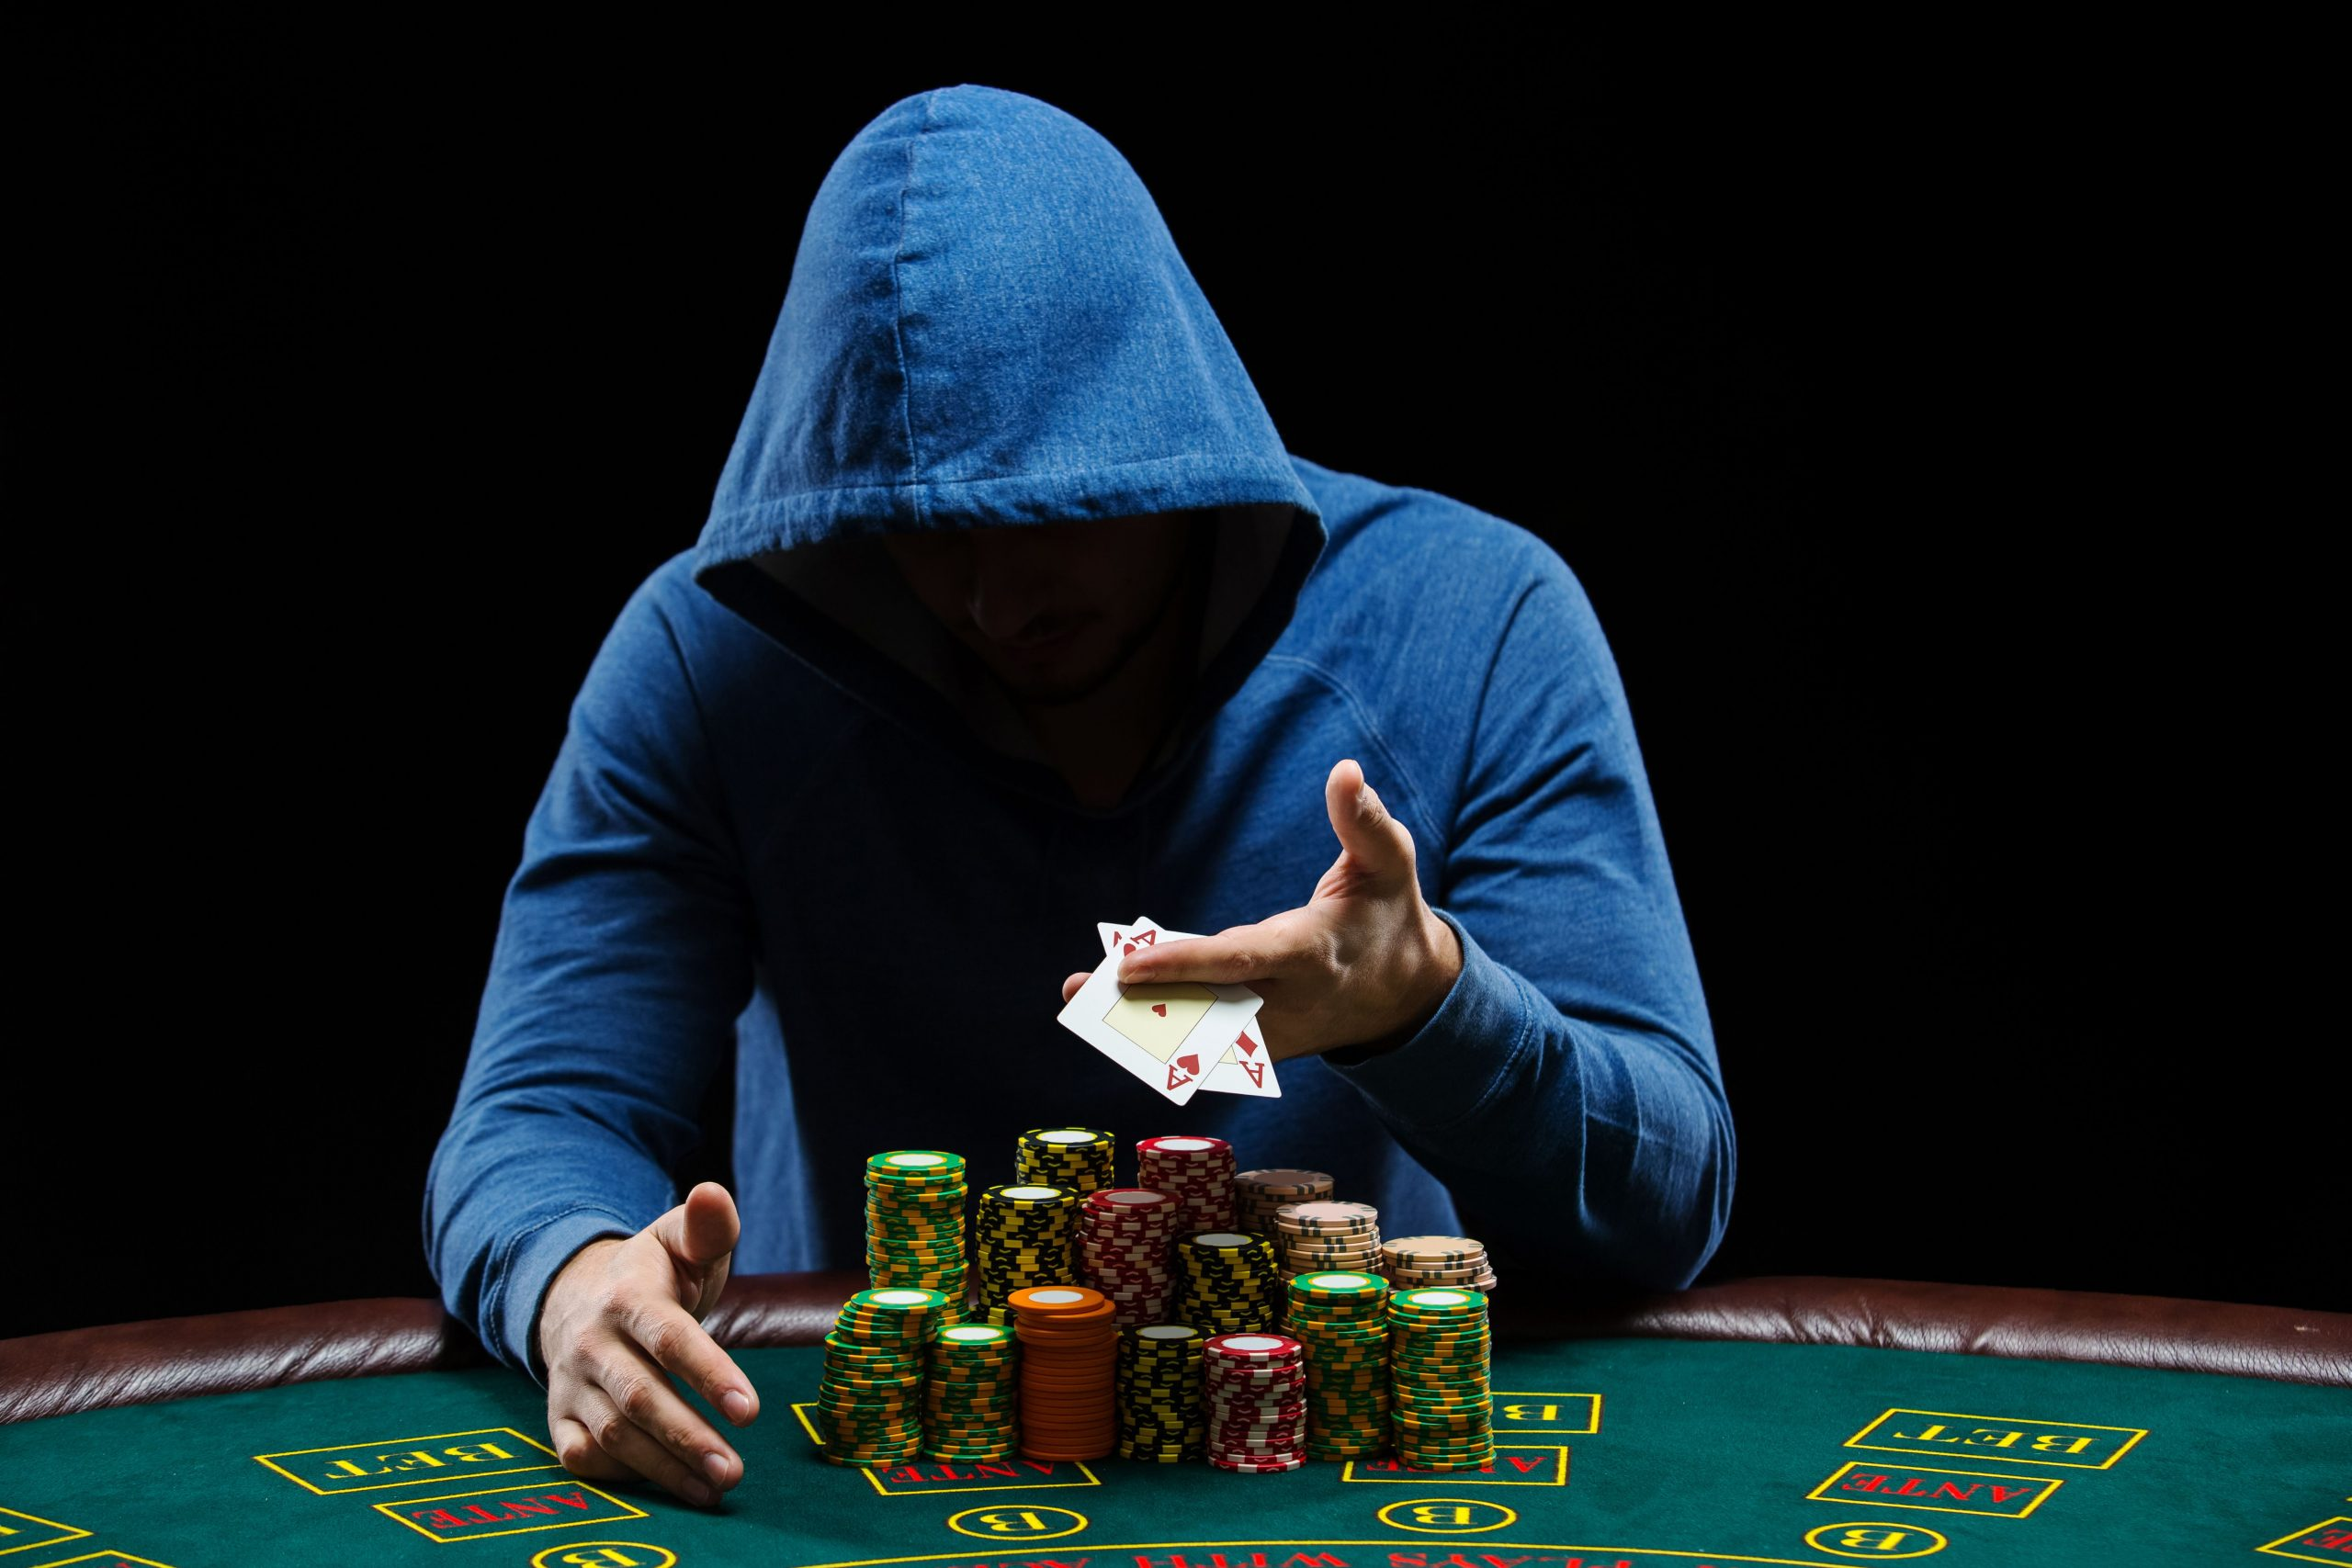 Poker online On A Budget: 7 Tips From The Great Depression